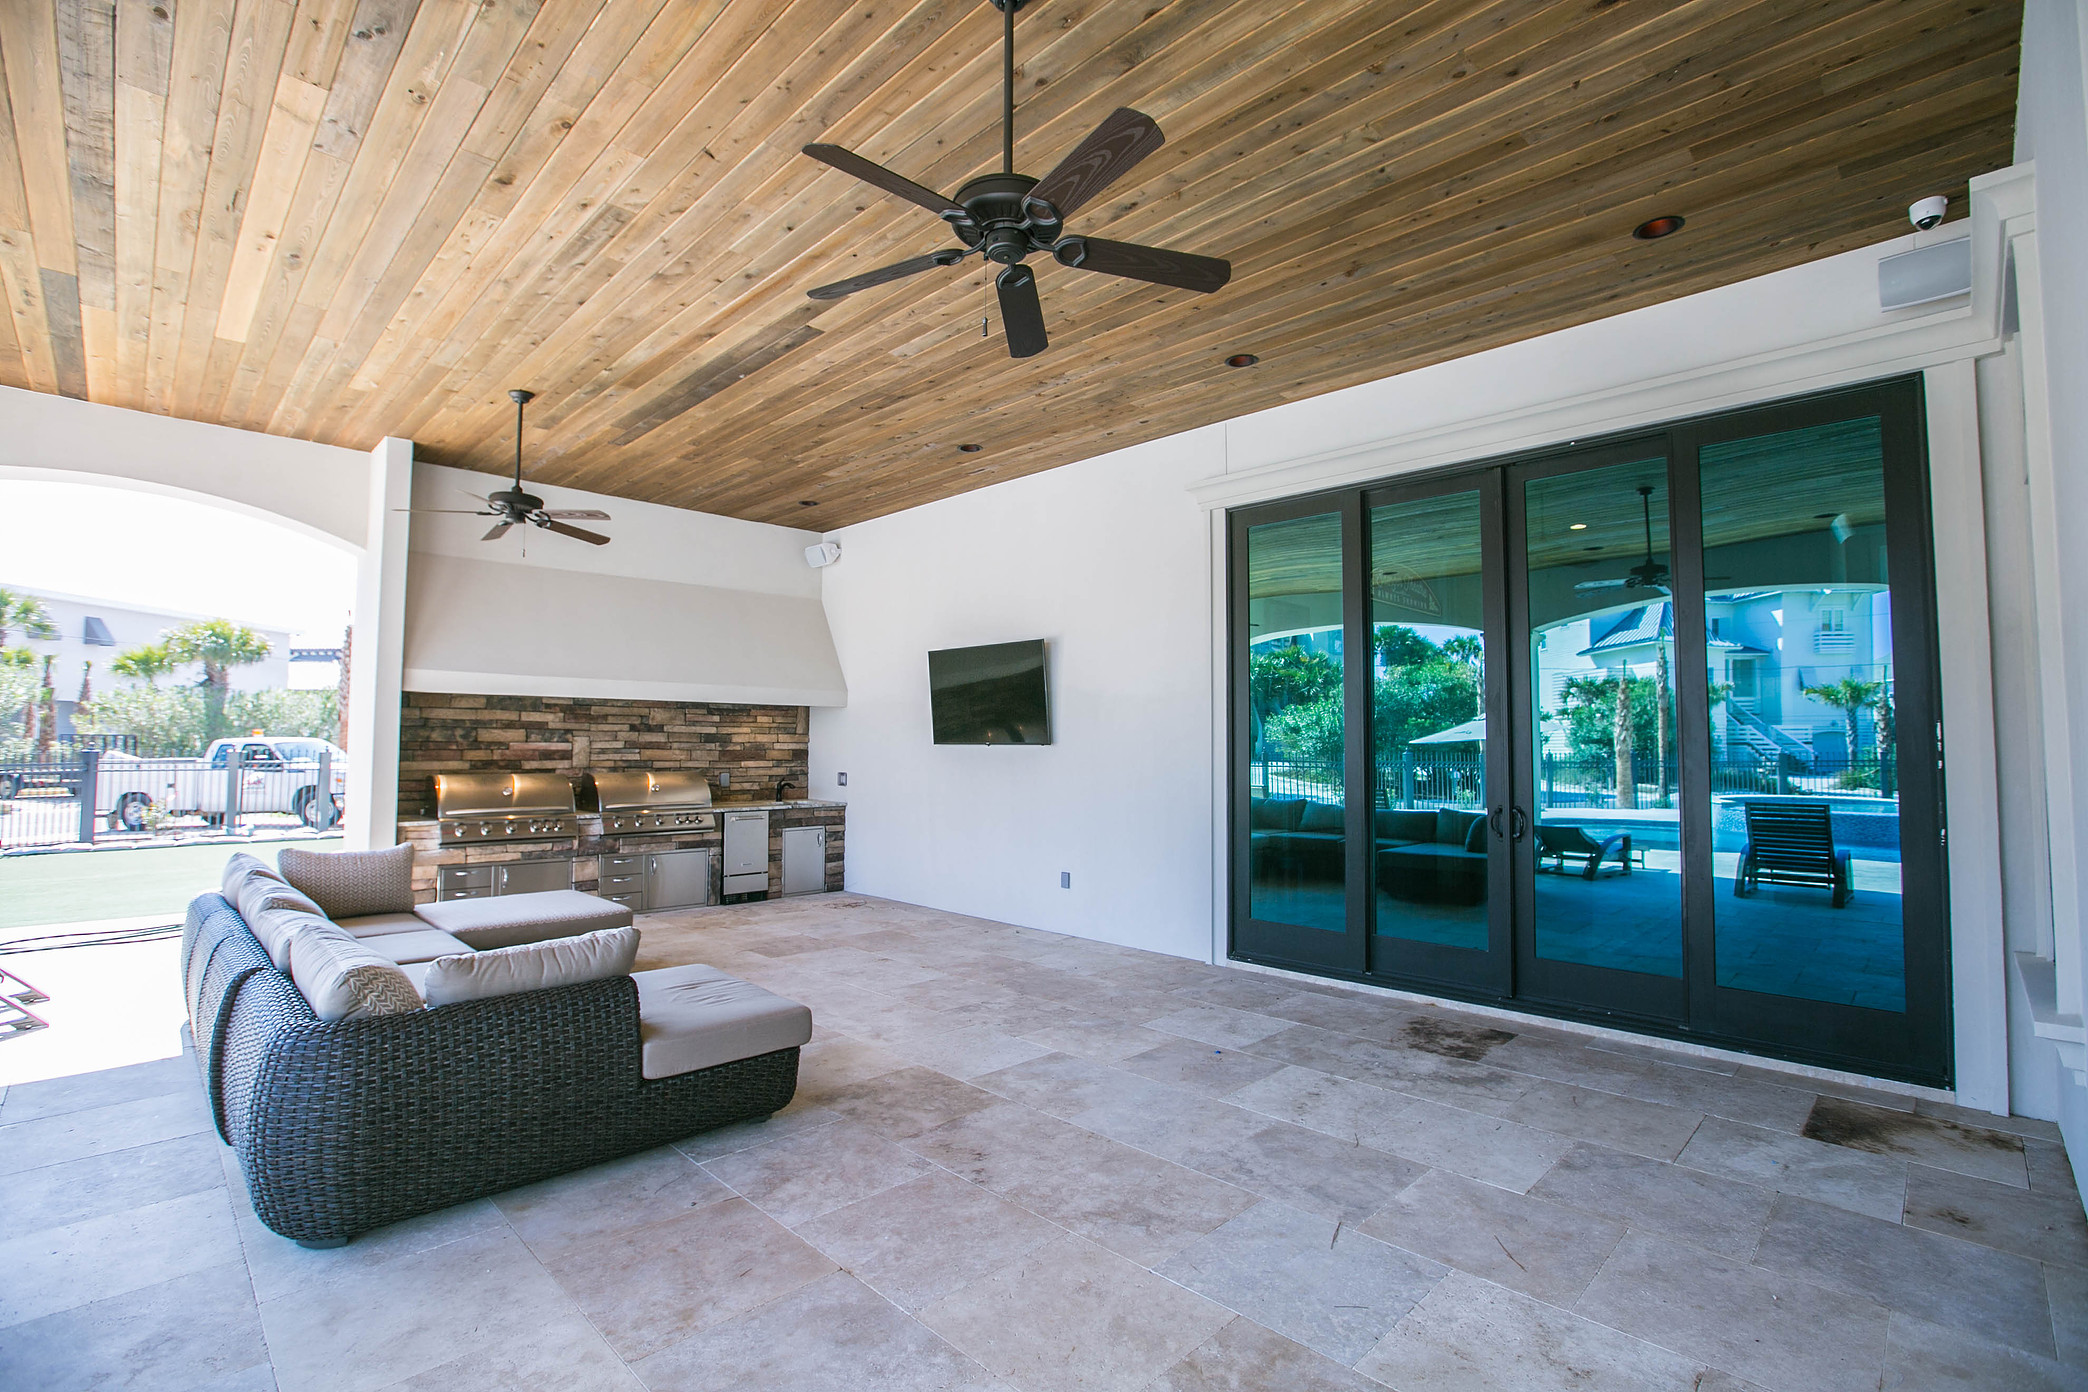 Custom Home with wood planked ceiling in outdoor living area